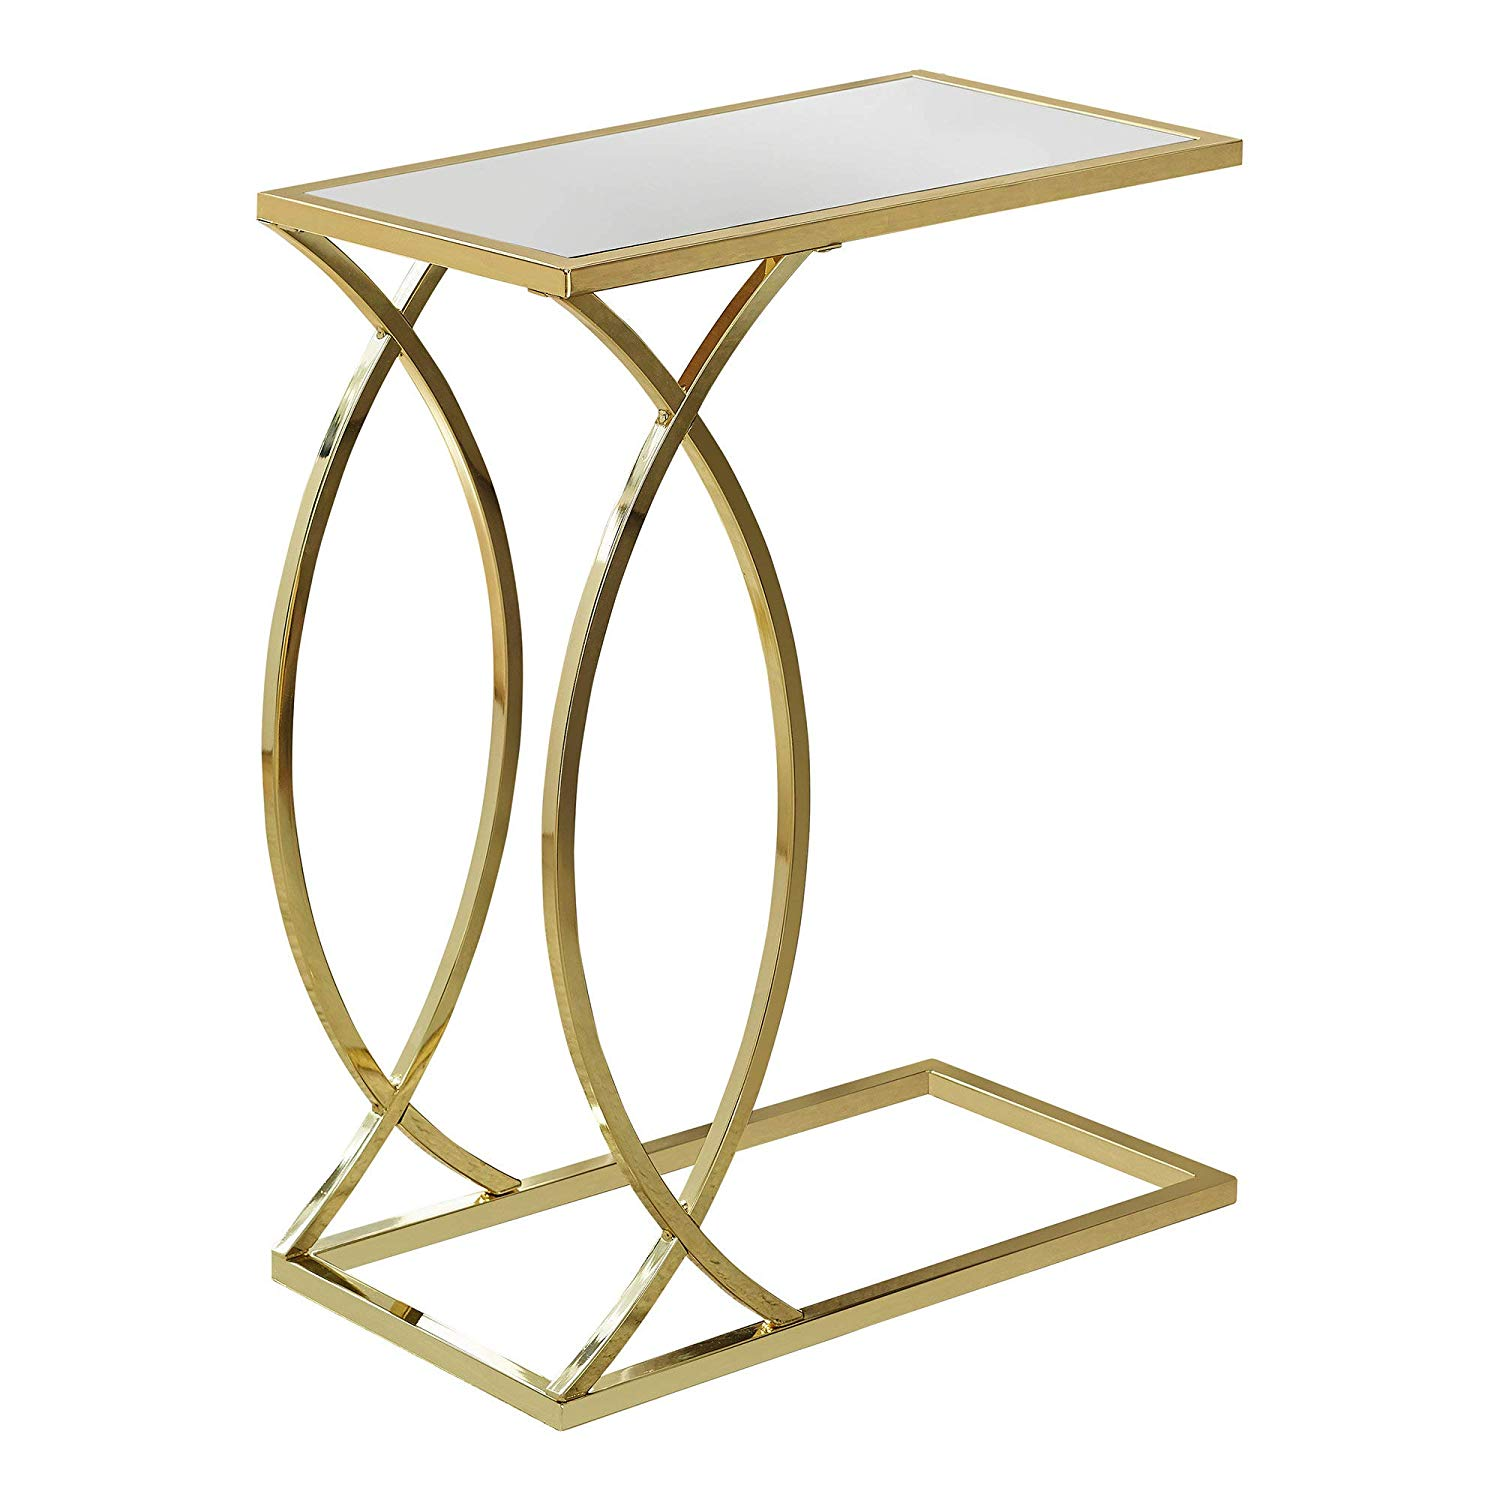 monarch specialties accent table gold finish kitchen clarissa metal dining bankers lamp white acrylic nest tables office furniture champagne ice bucket drum kit throne pet